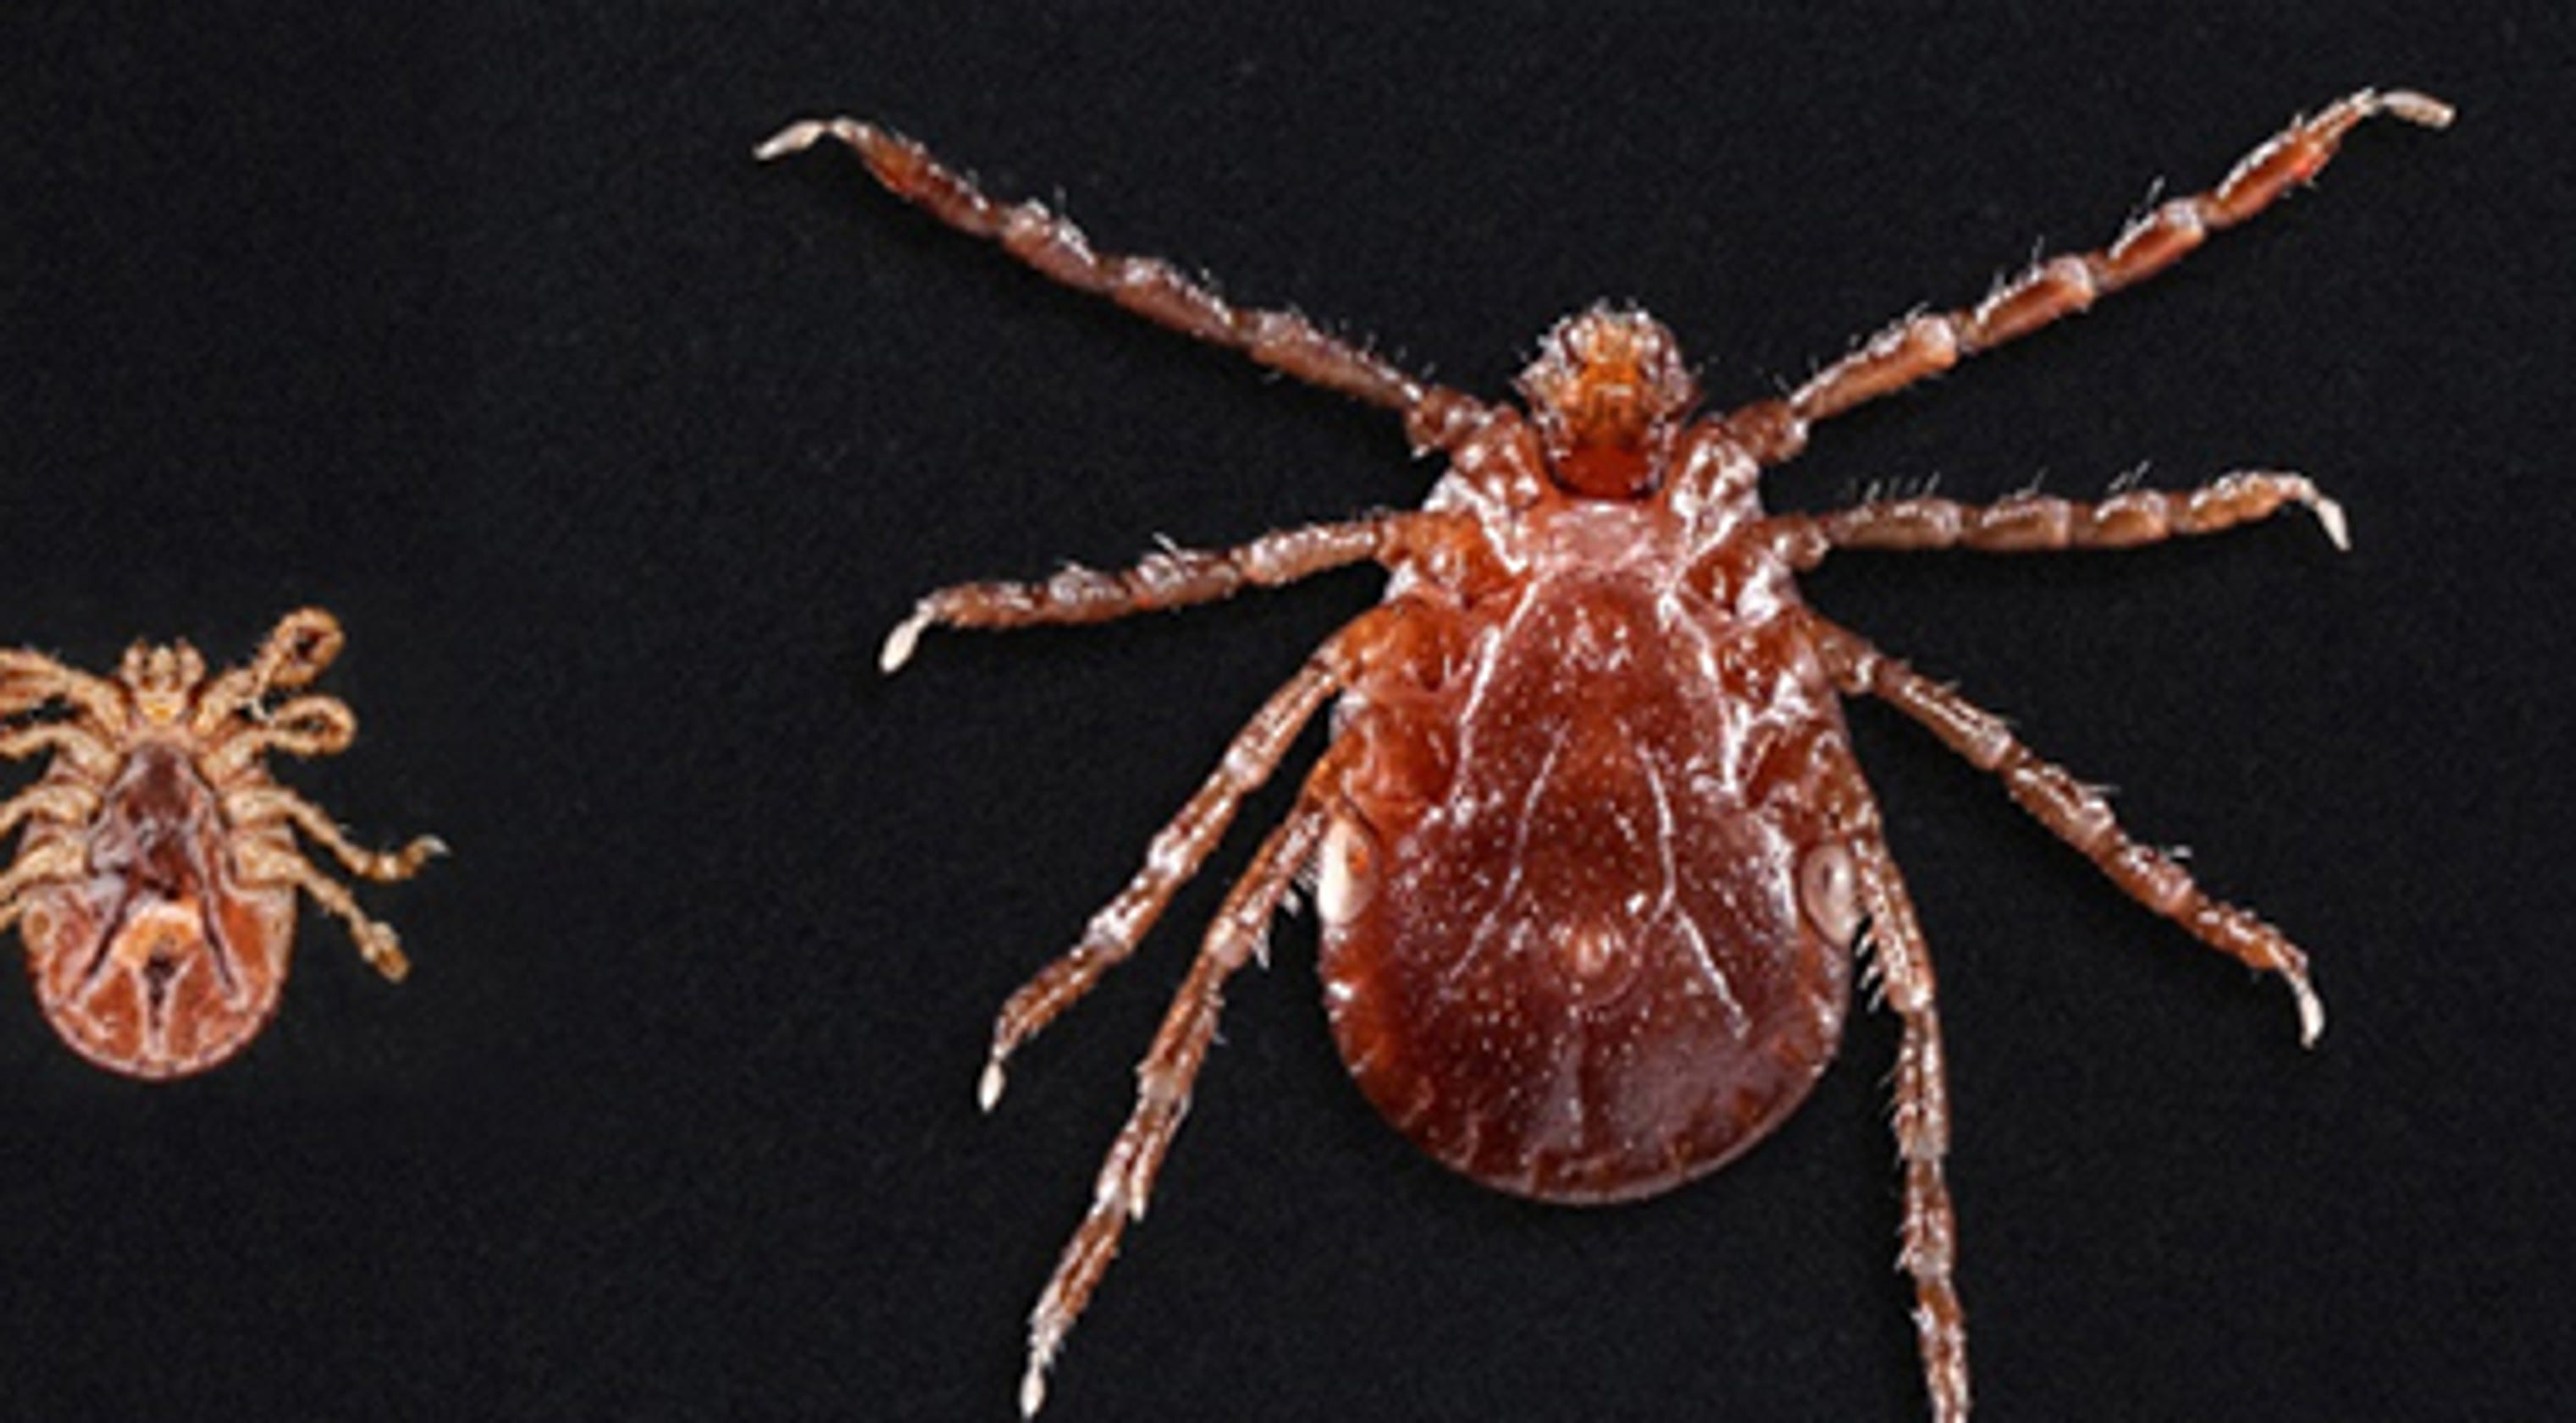 cdc asian longhorned ticks spreading across us may spread diseases